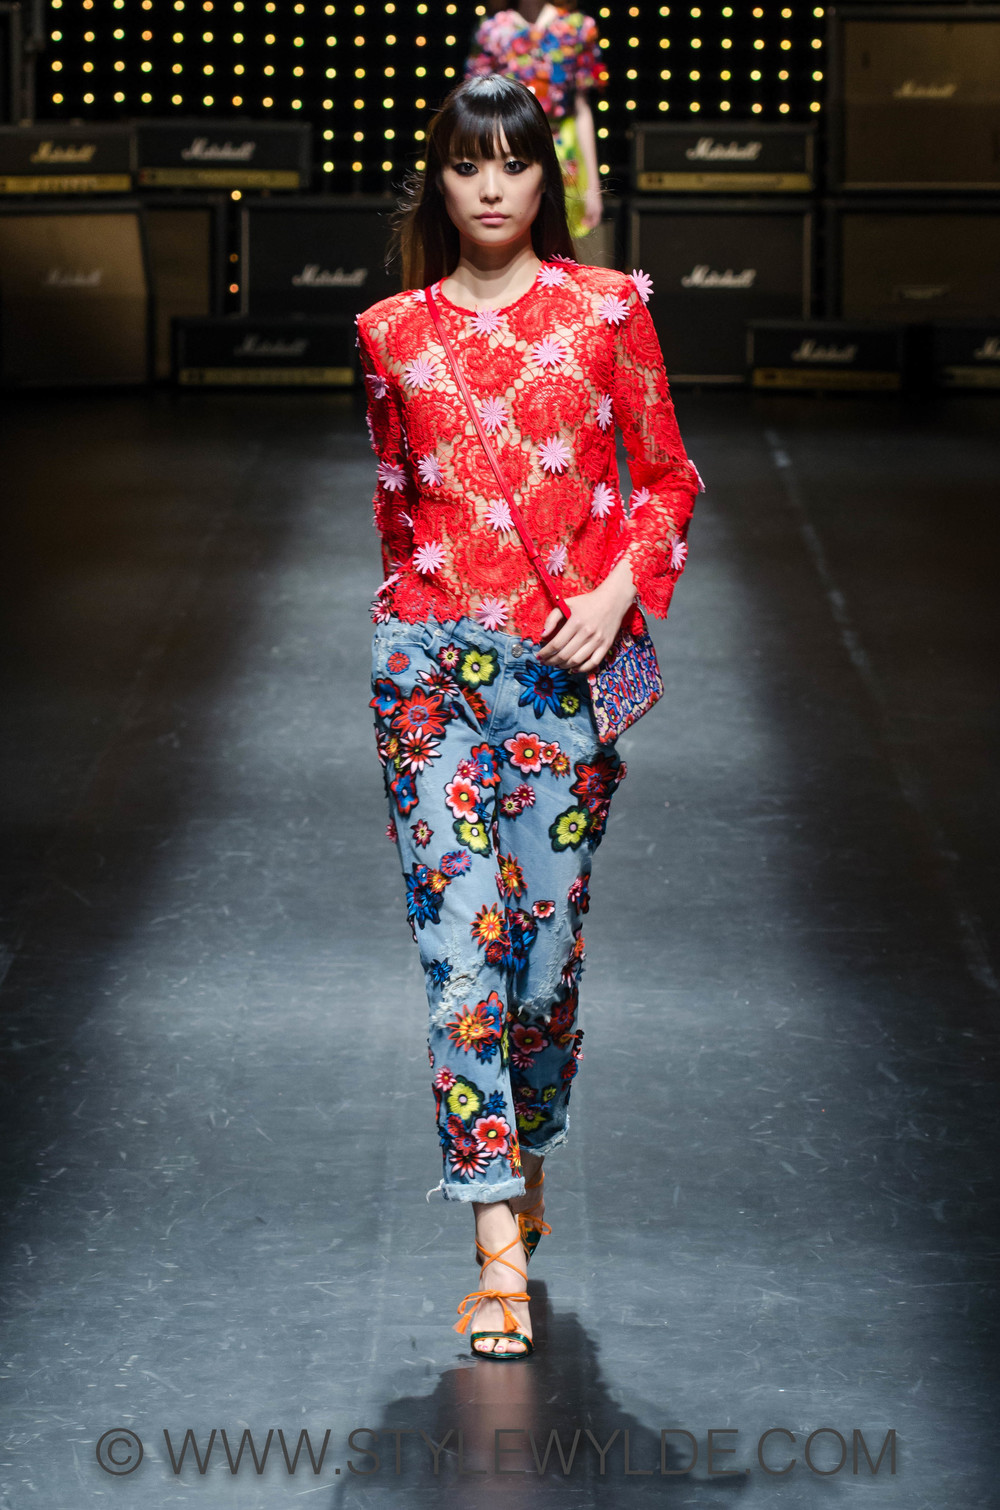 stylewylde_HouseofHolland_SS15 (52 of 68).jpg